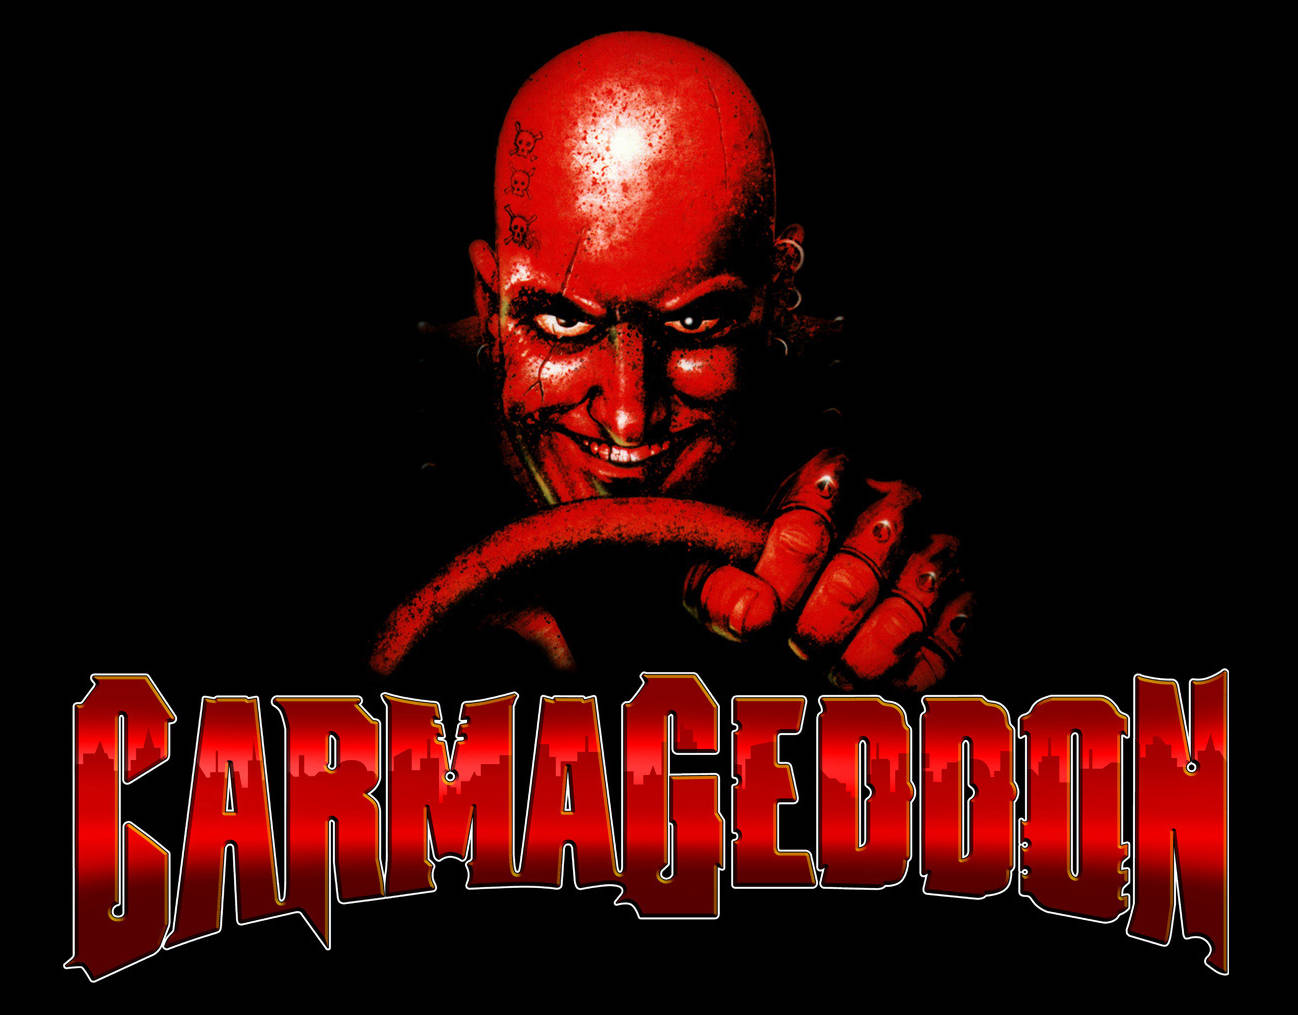 Carmageddon title screen